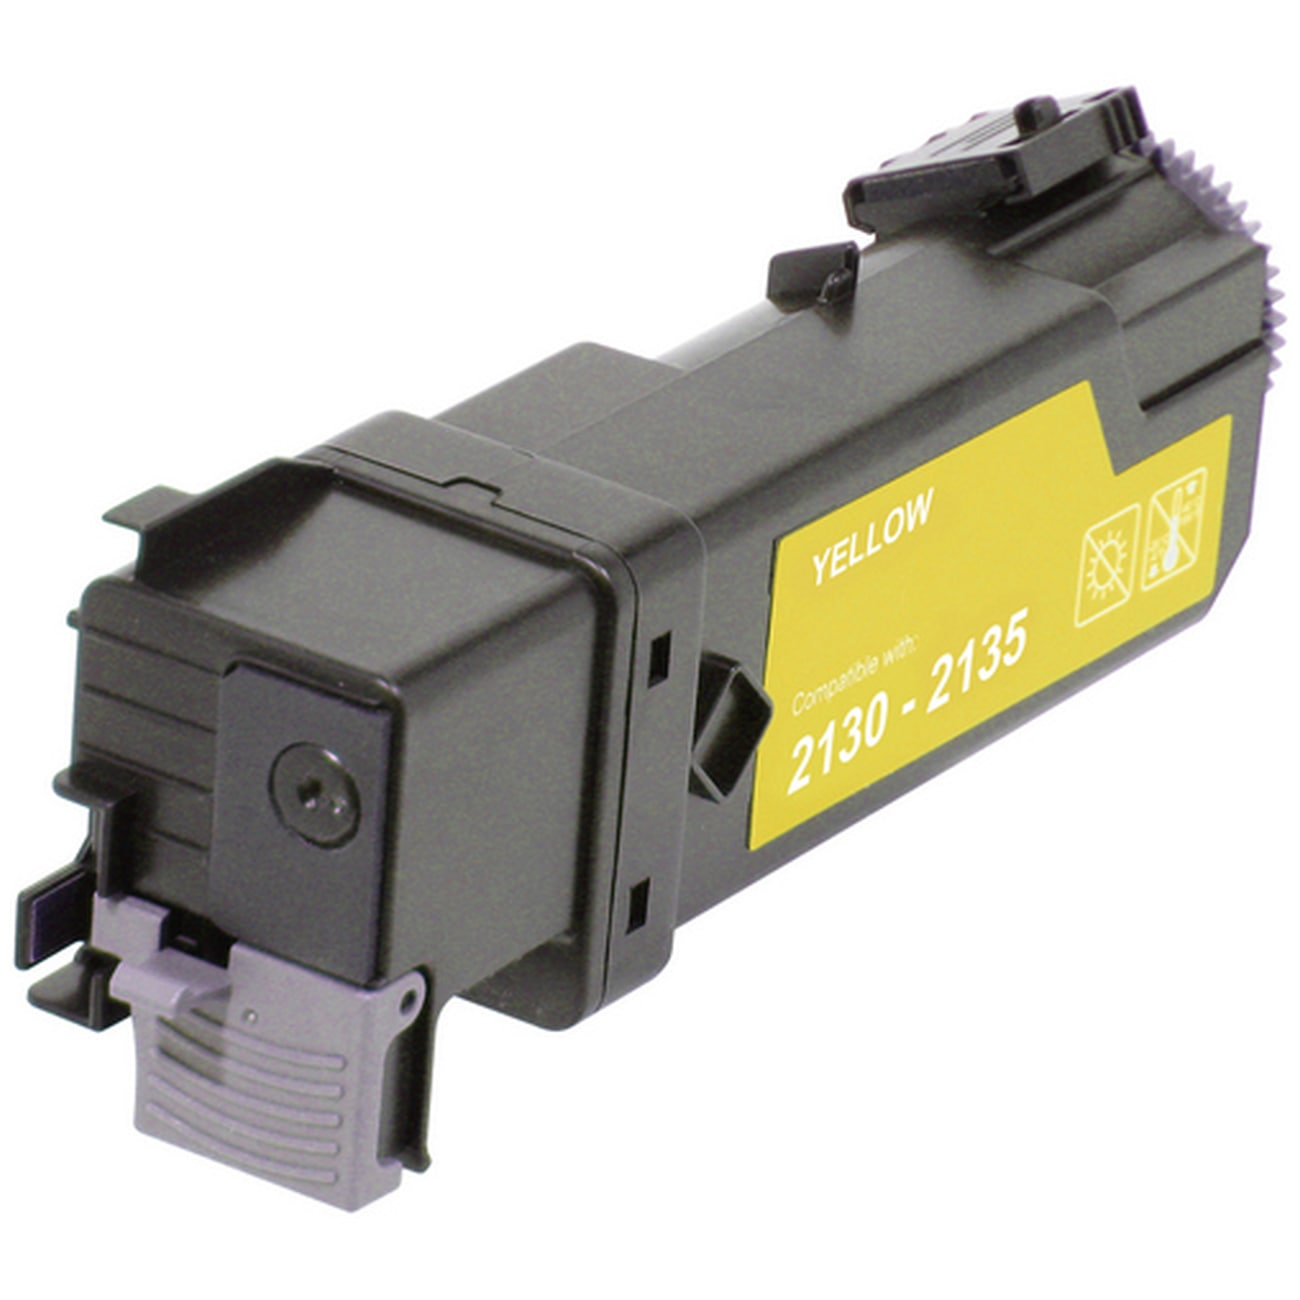 330-1438 Toner Cartridge - Dell Compatible (Yellow)